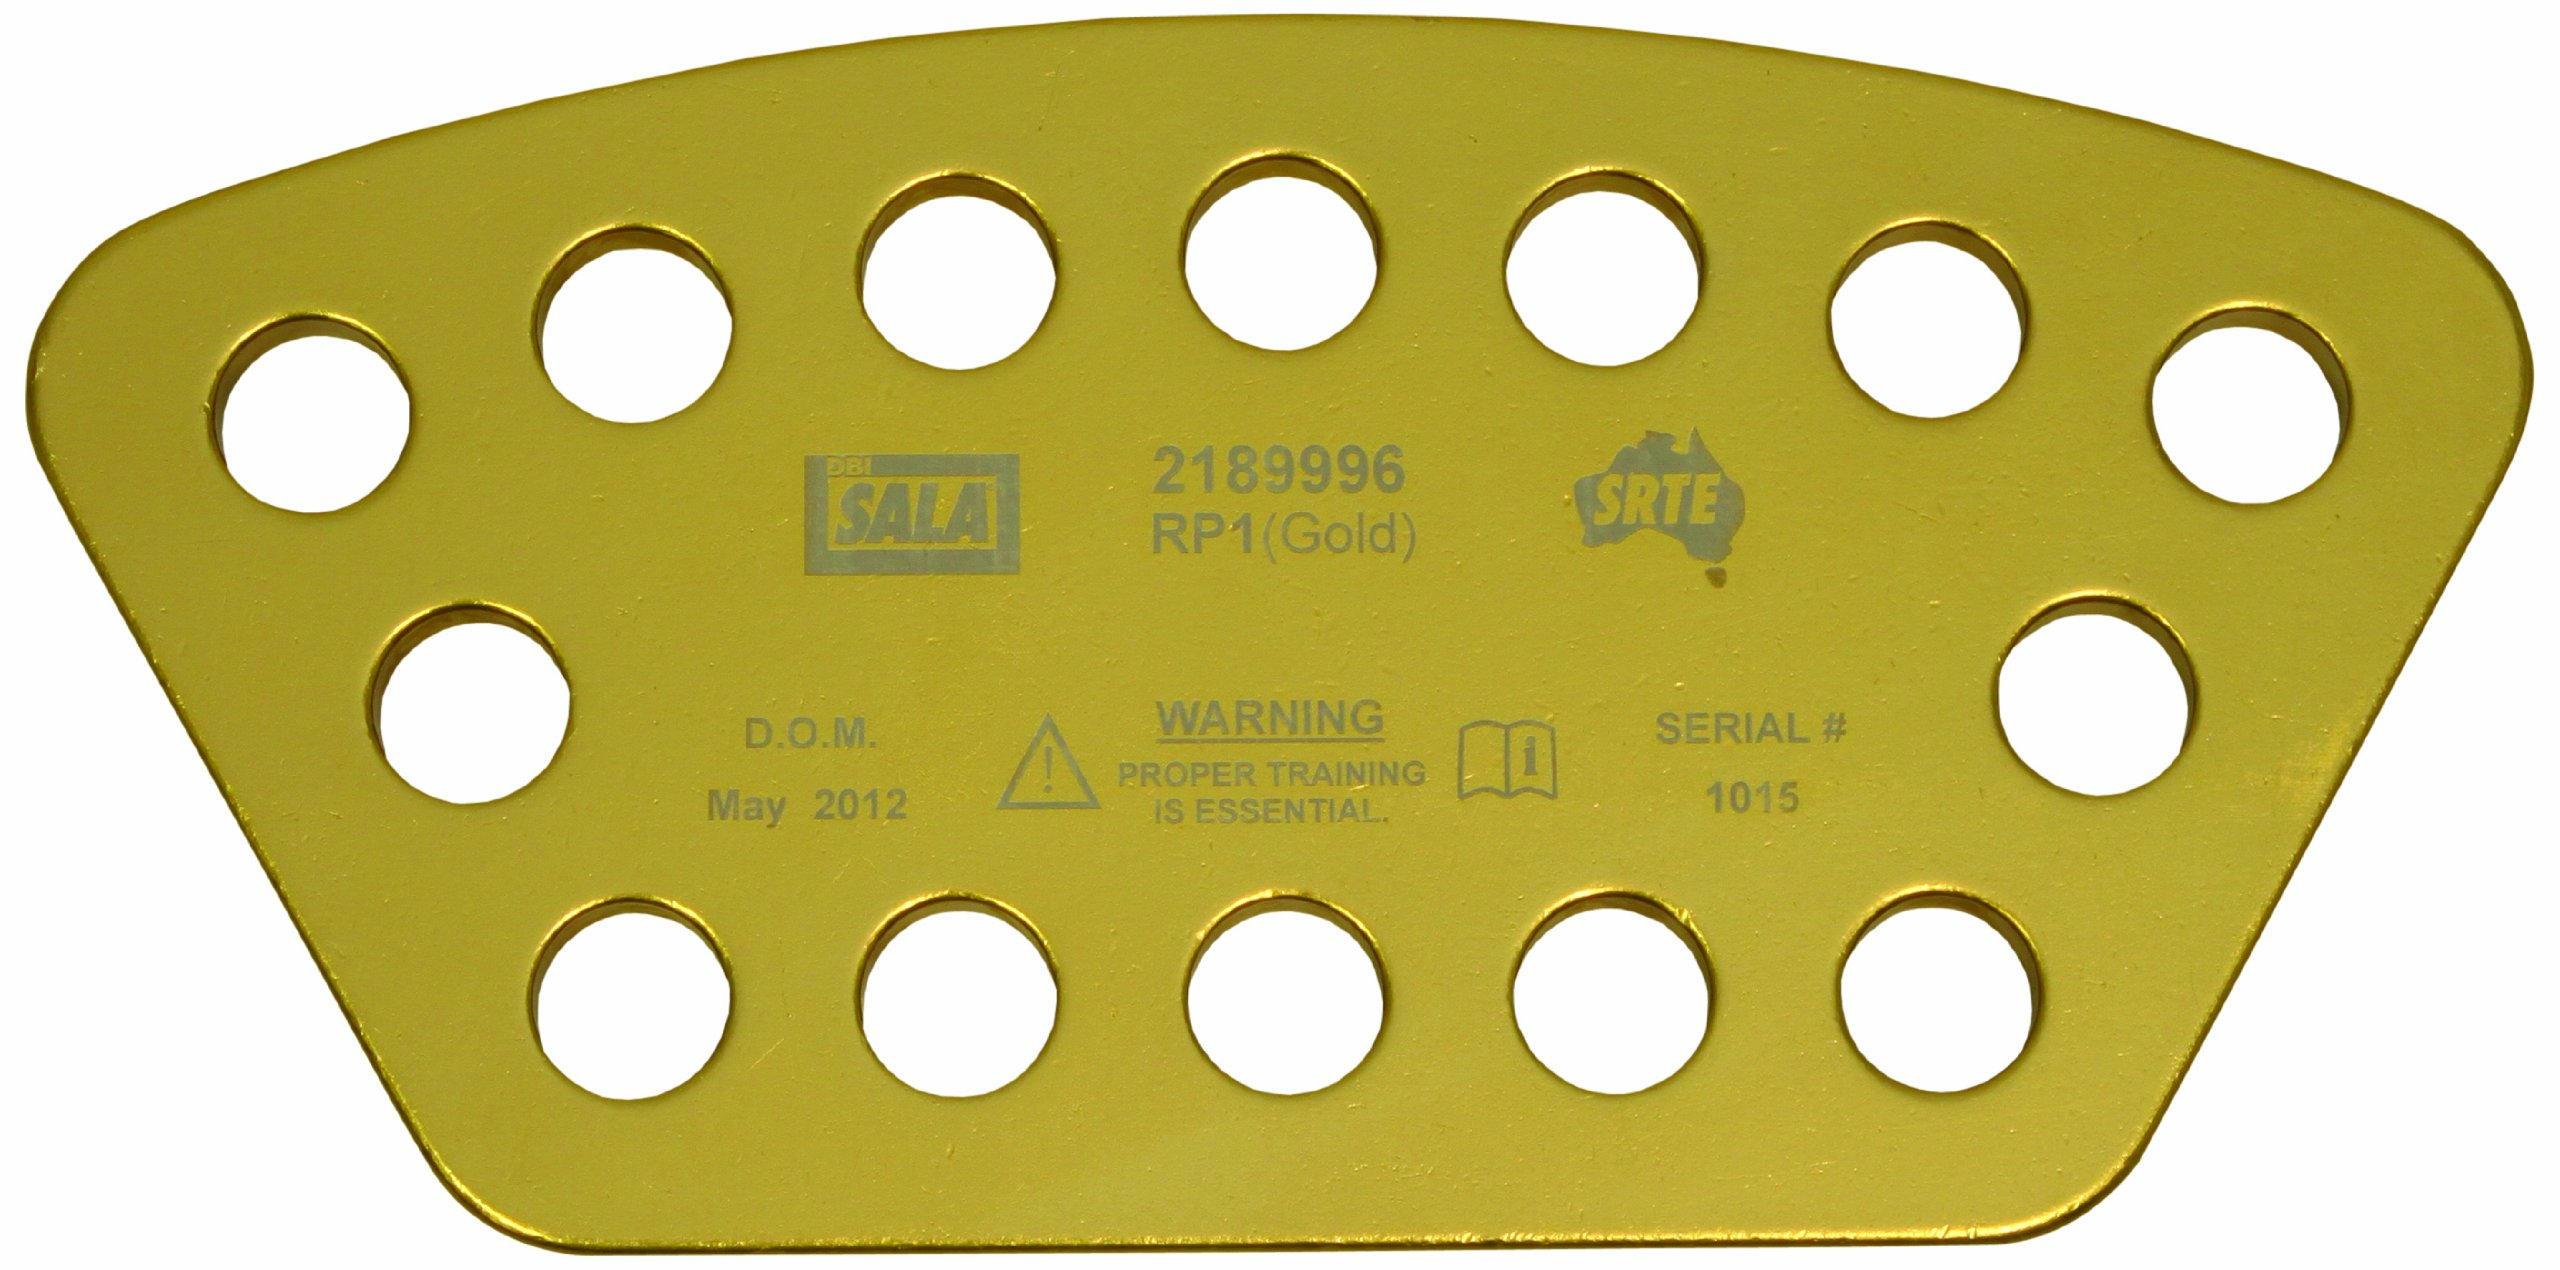 3M DBI-SALA Rollgliss Technical Rescue 2189996 Rigging Plate, Large, Rectangular, Aluminum, 14 Rigging Points, Gold